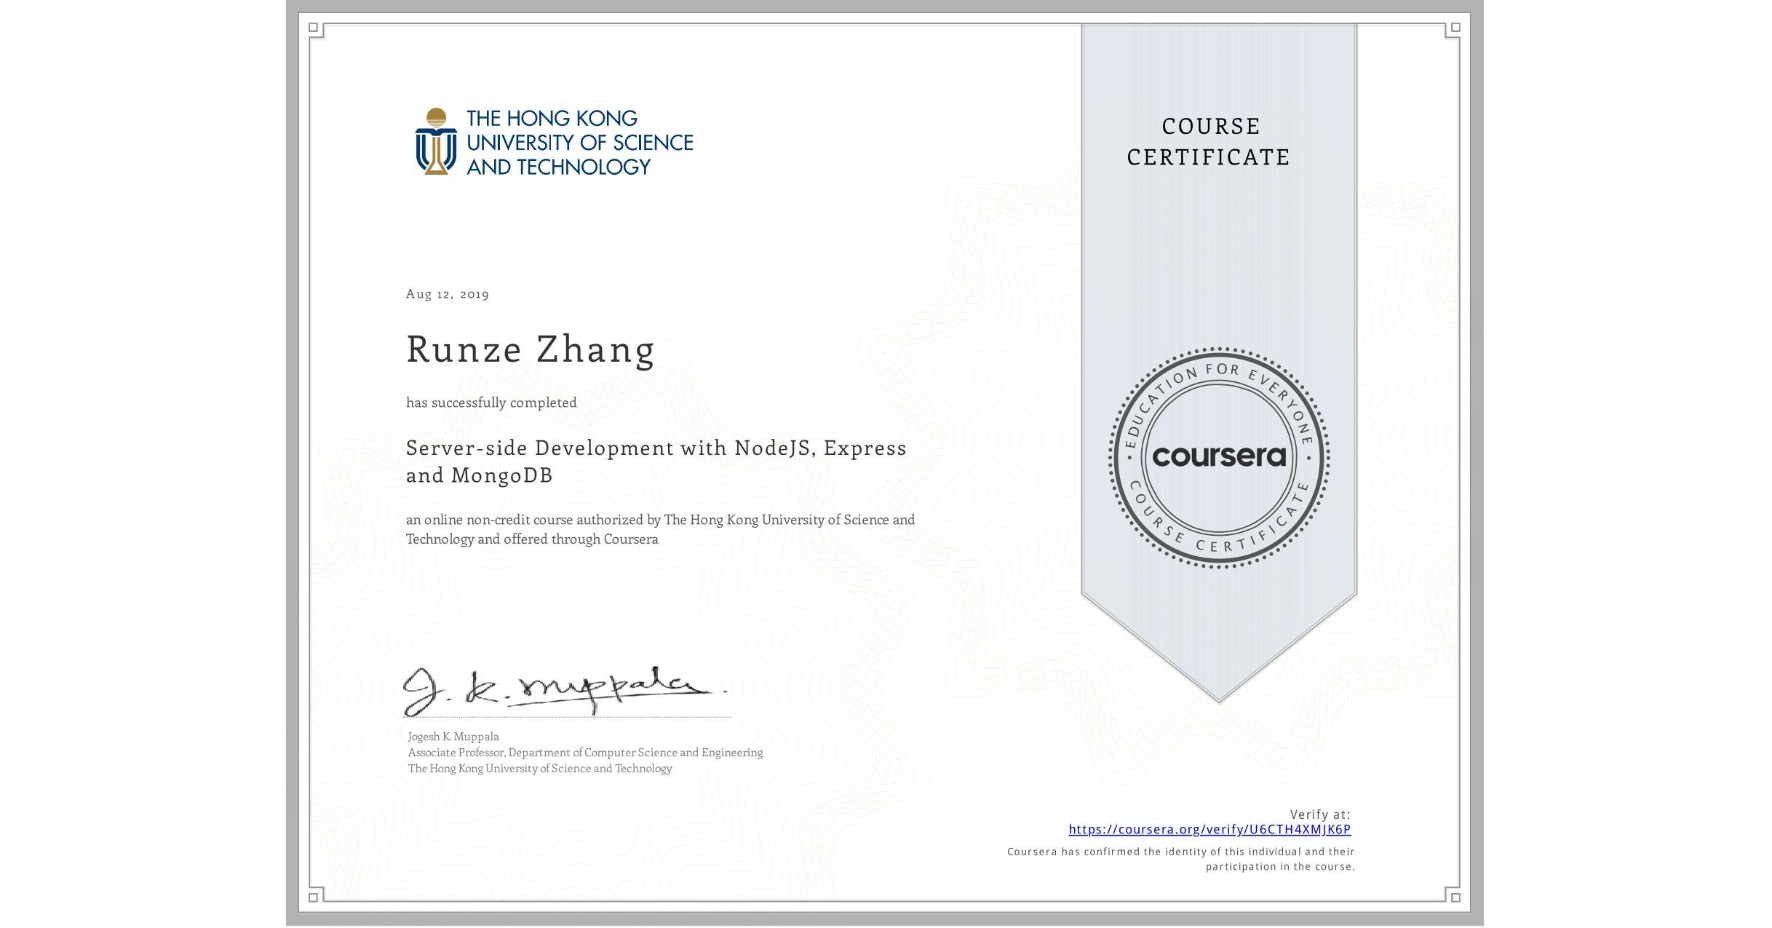 View certificate for Runze Zhang, Server-side Development with NodeJS, Express and MongoDB, an online non-credit course authorized by The Hong Kong University of Science and Technology and offered through Coursera